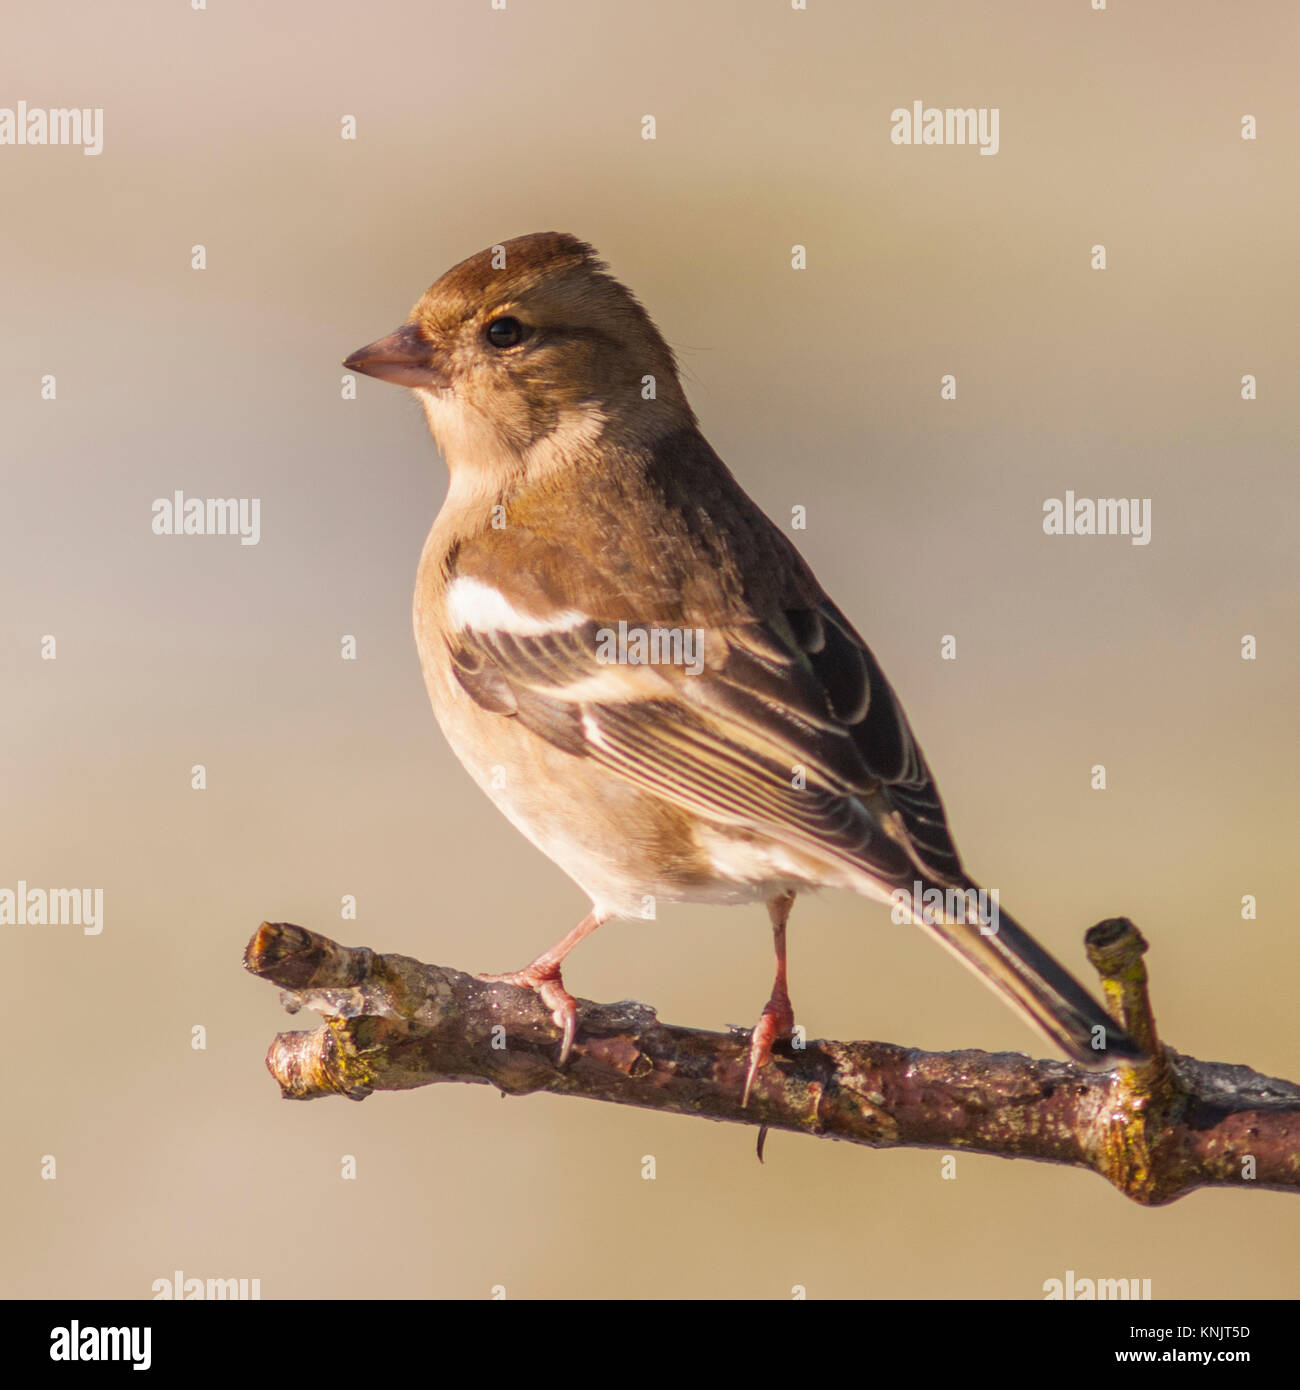 Norfolk, England, UK. 12th Dec, 2017. A Female Chaffinch (Fringilla coelebs) feeding in freezing conditions in a - Stock Image